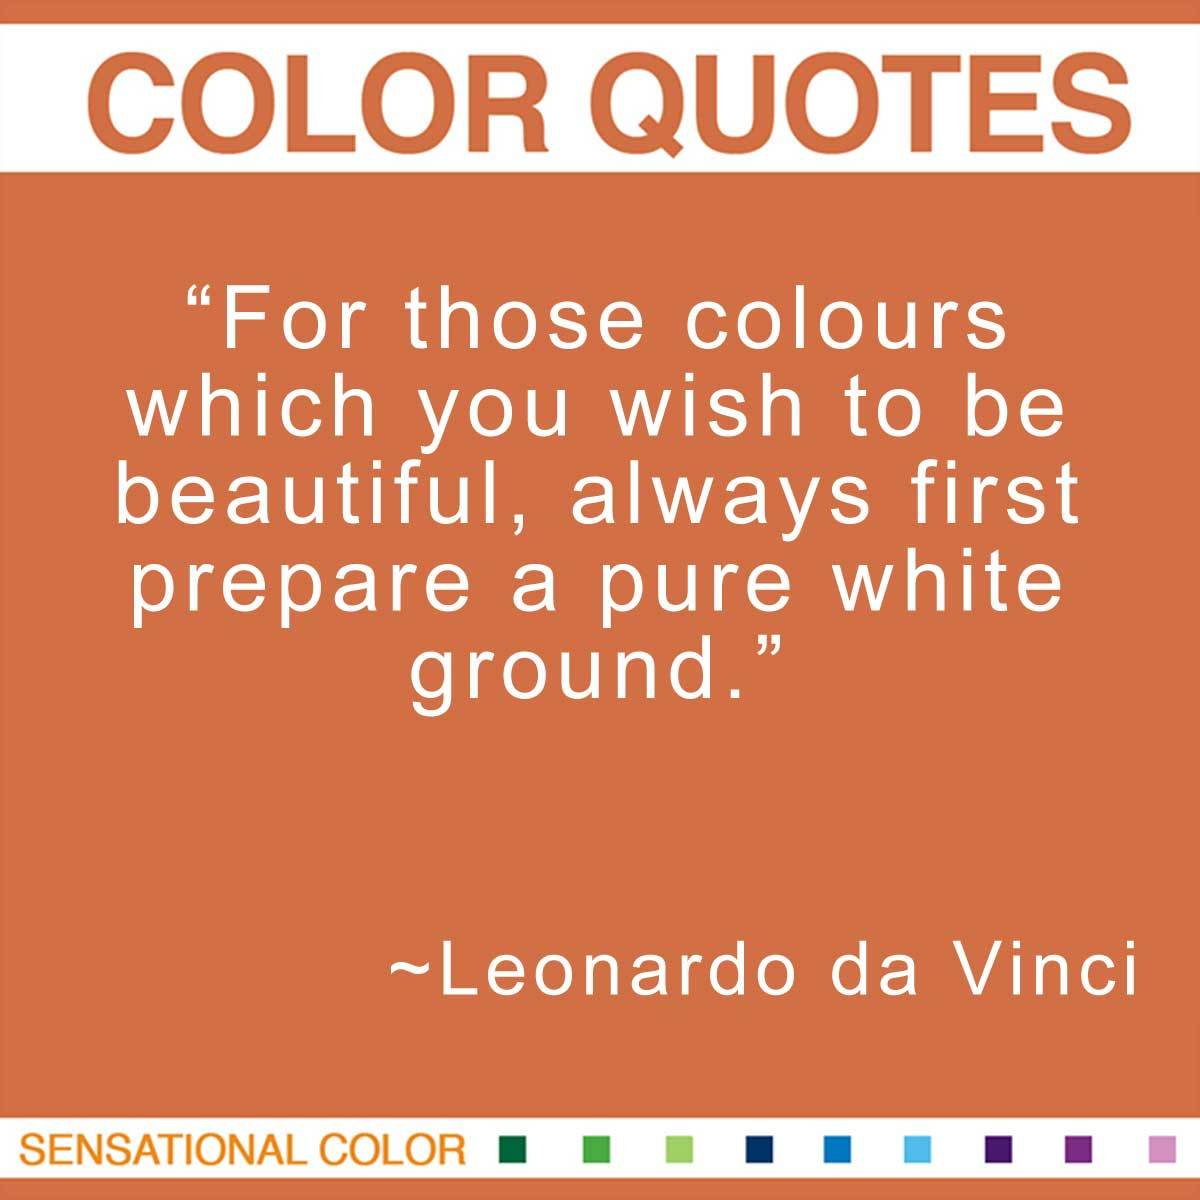 """For those colours which you wish to be beautiful, always first prepare a pure white ground."" - Leonardo da Vinci"